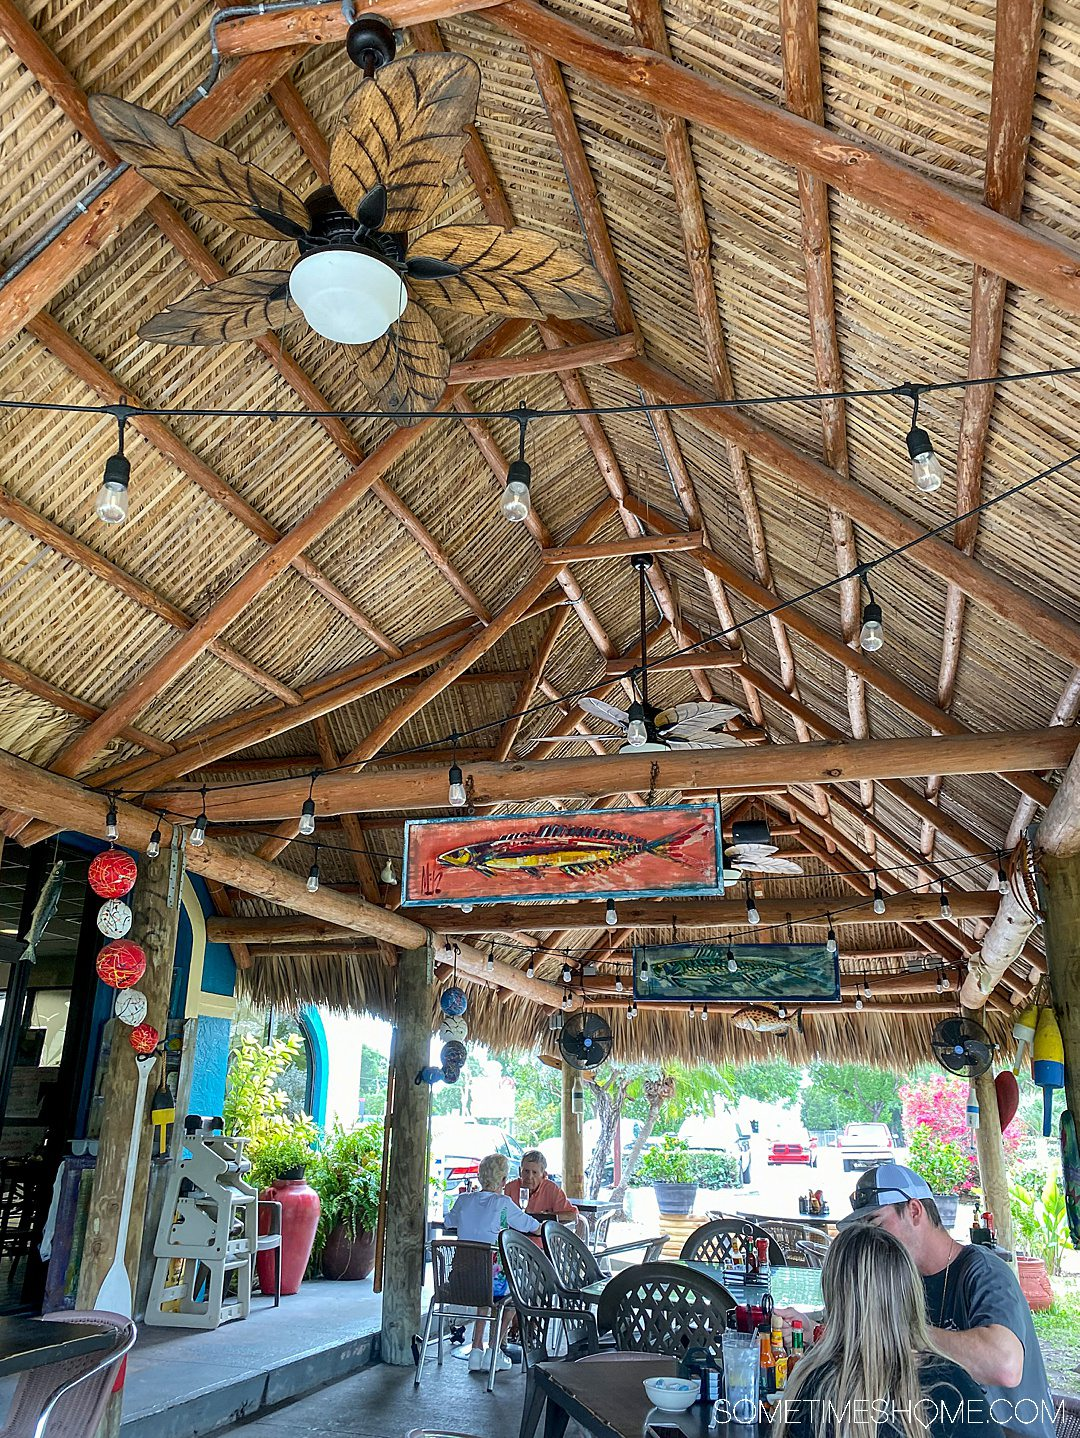 A roof above diners at a restaurant in Key Largo, FL and two fish paintings in the rafters.